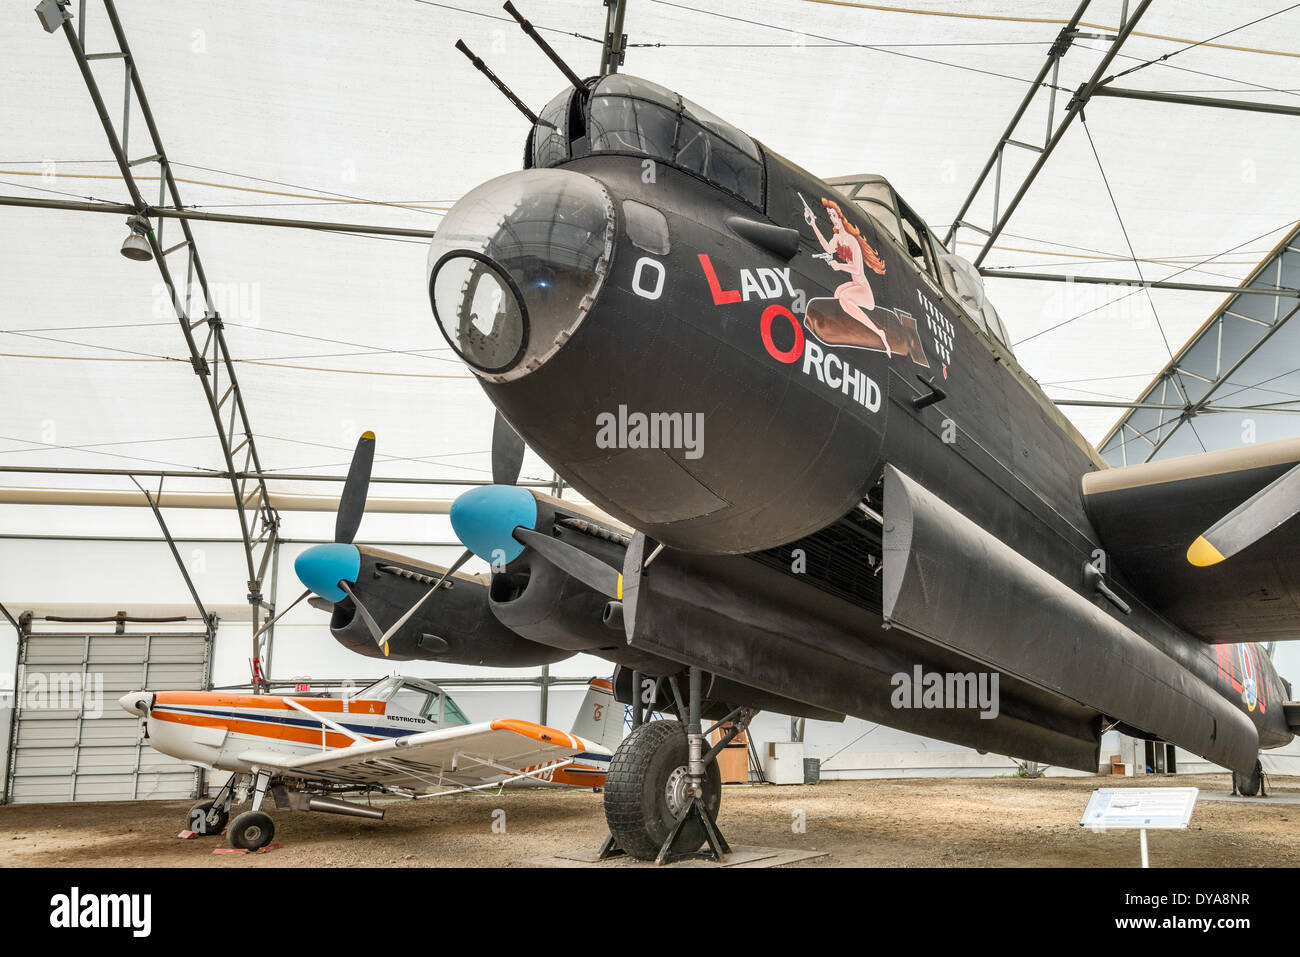 Avro Lancaster Mk X WWII bomber, Cessna 188 AGWagon light agricultural aircraft, Aero Space Museum of Calgary, Alberta, Canada - Stock Image